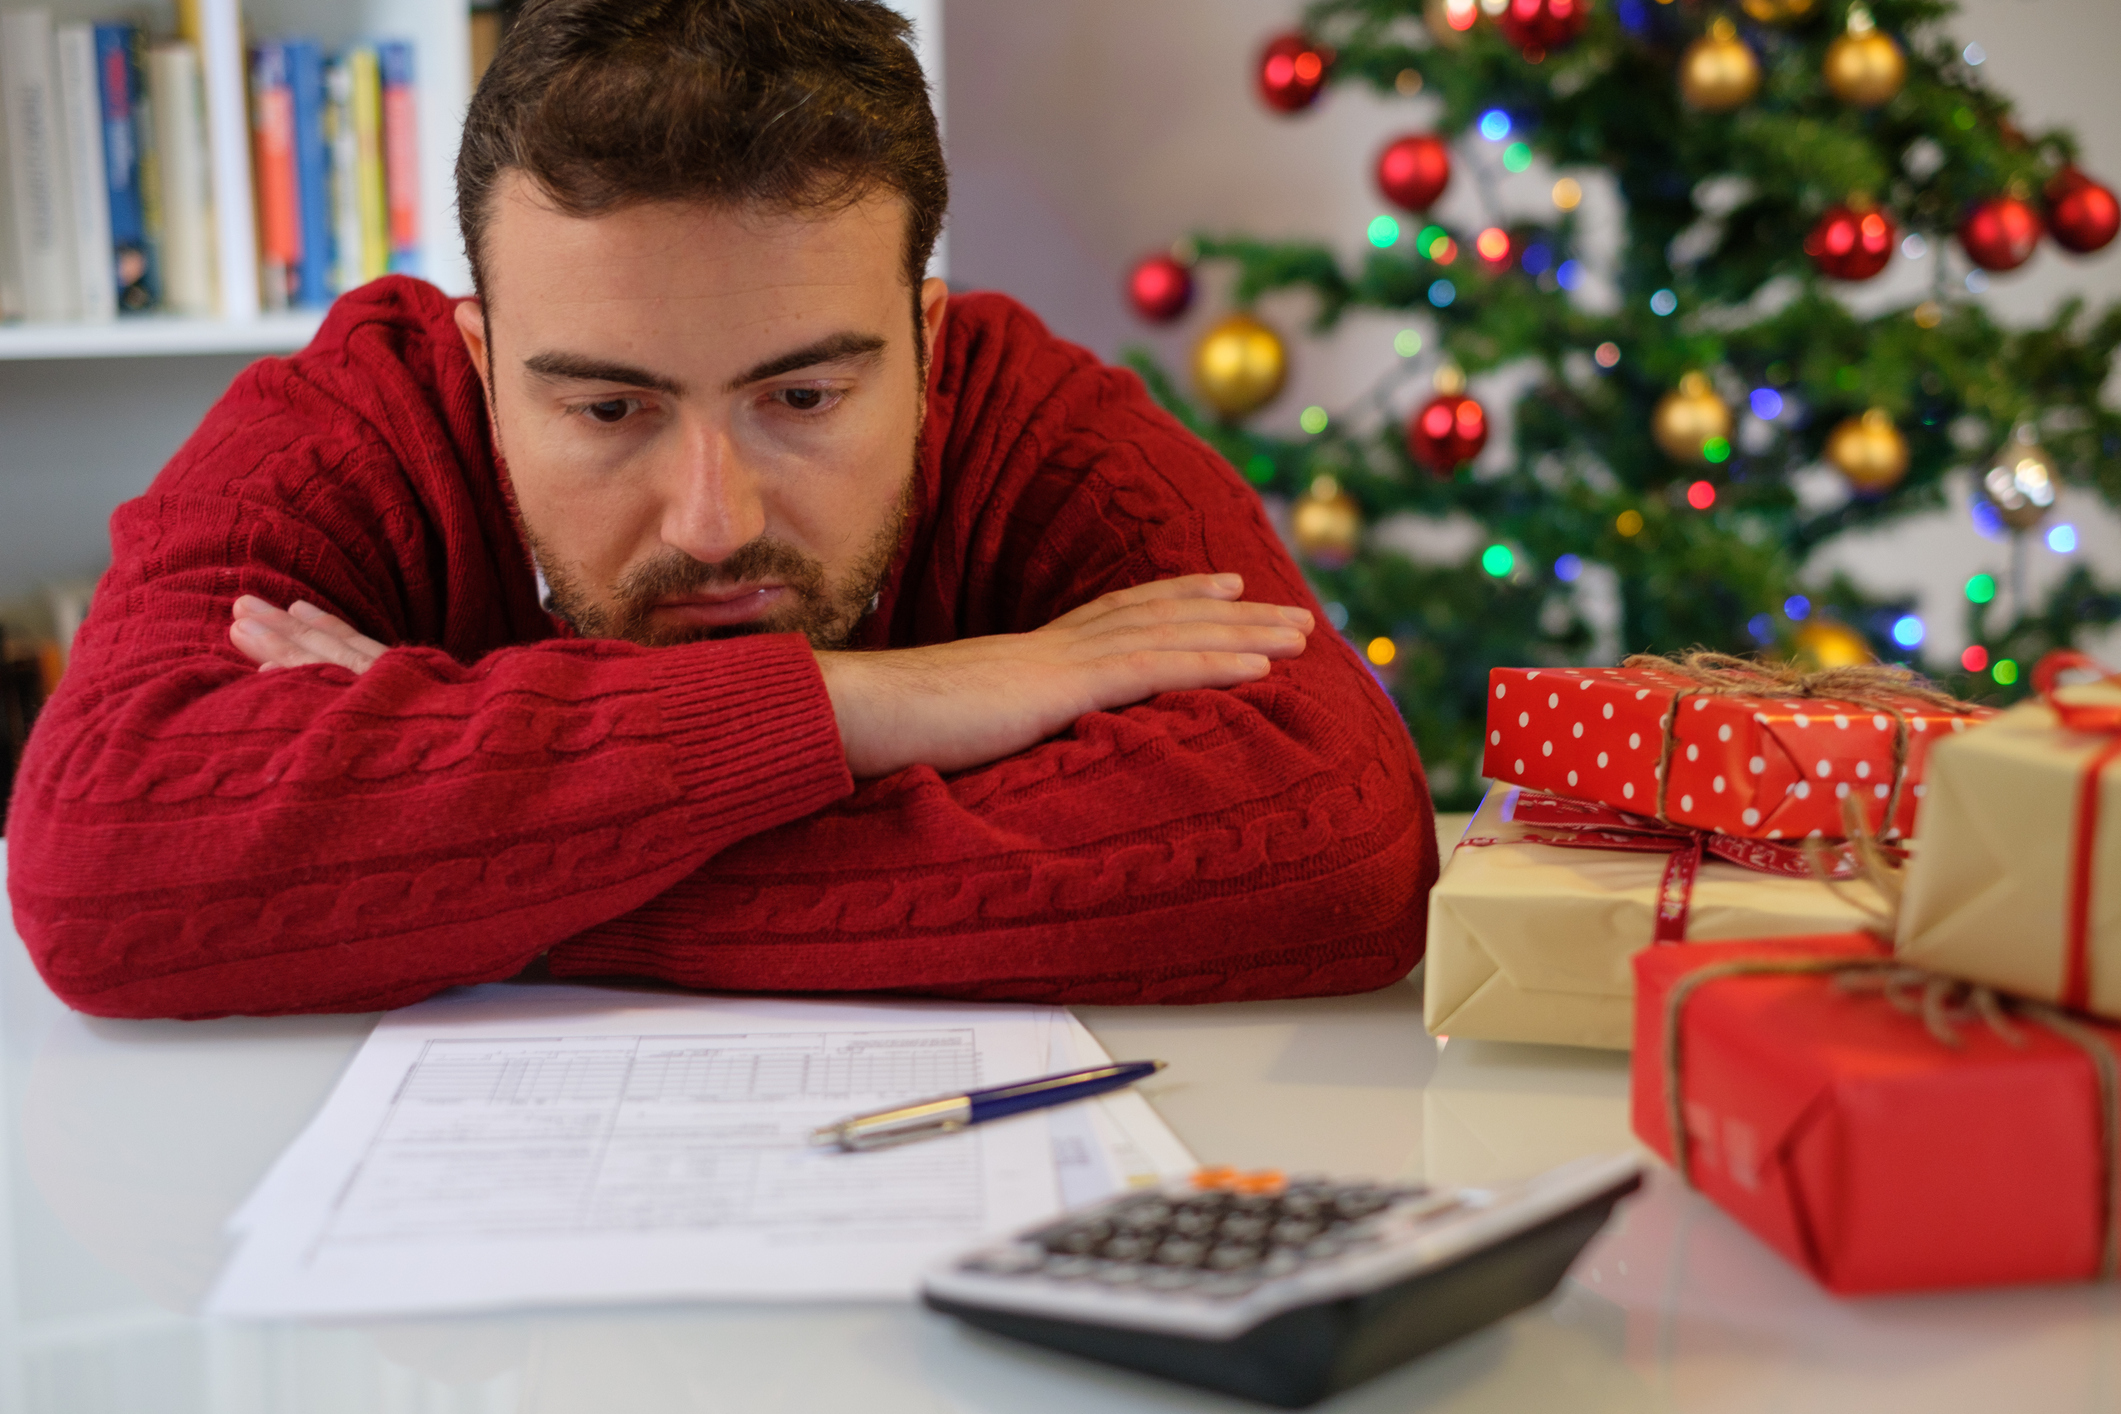 Man in festive sweater morosely slumped over desk looking at statements and calculator against Christmas tree backdrop.